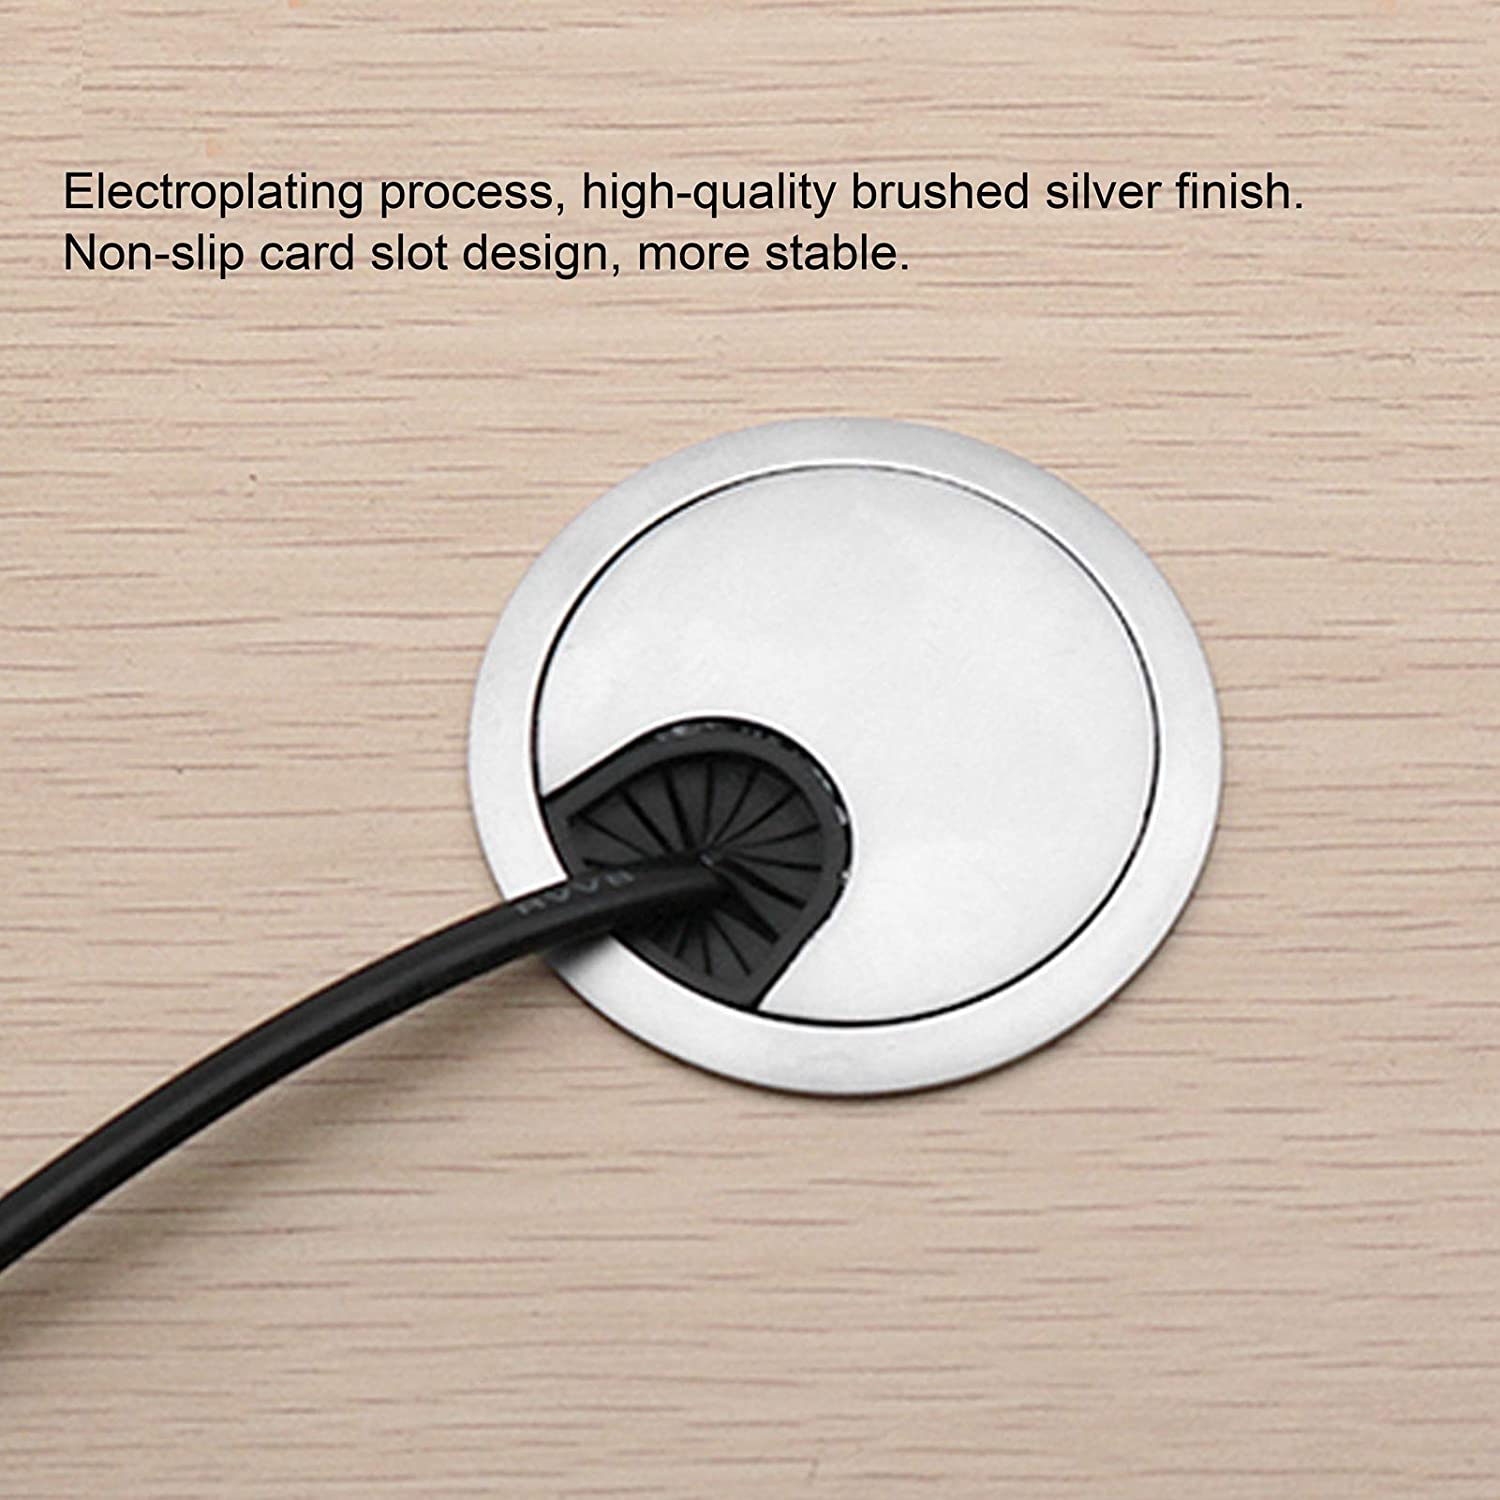 50 Brushed Alloy Wire Box Desk Hole Cover Desk Grommets Zinc Alloy Brushed Silver 4 Set Easy to Install Non‑Slip Computer Desk PC Peripheral School for Office